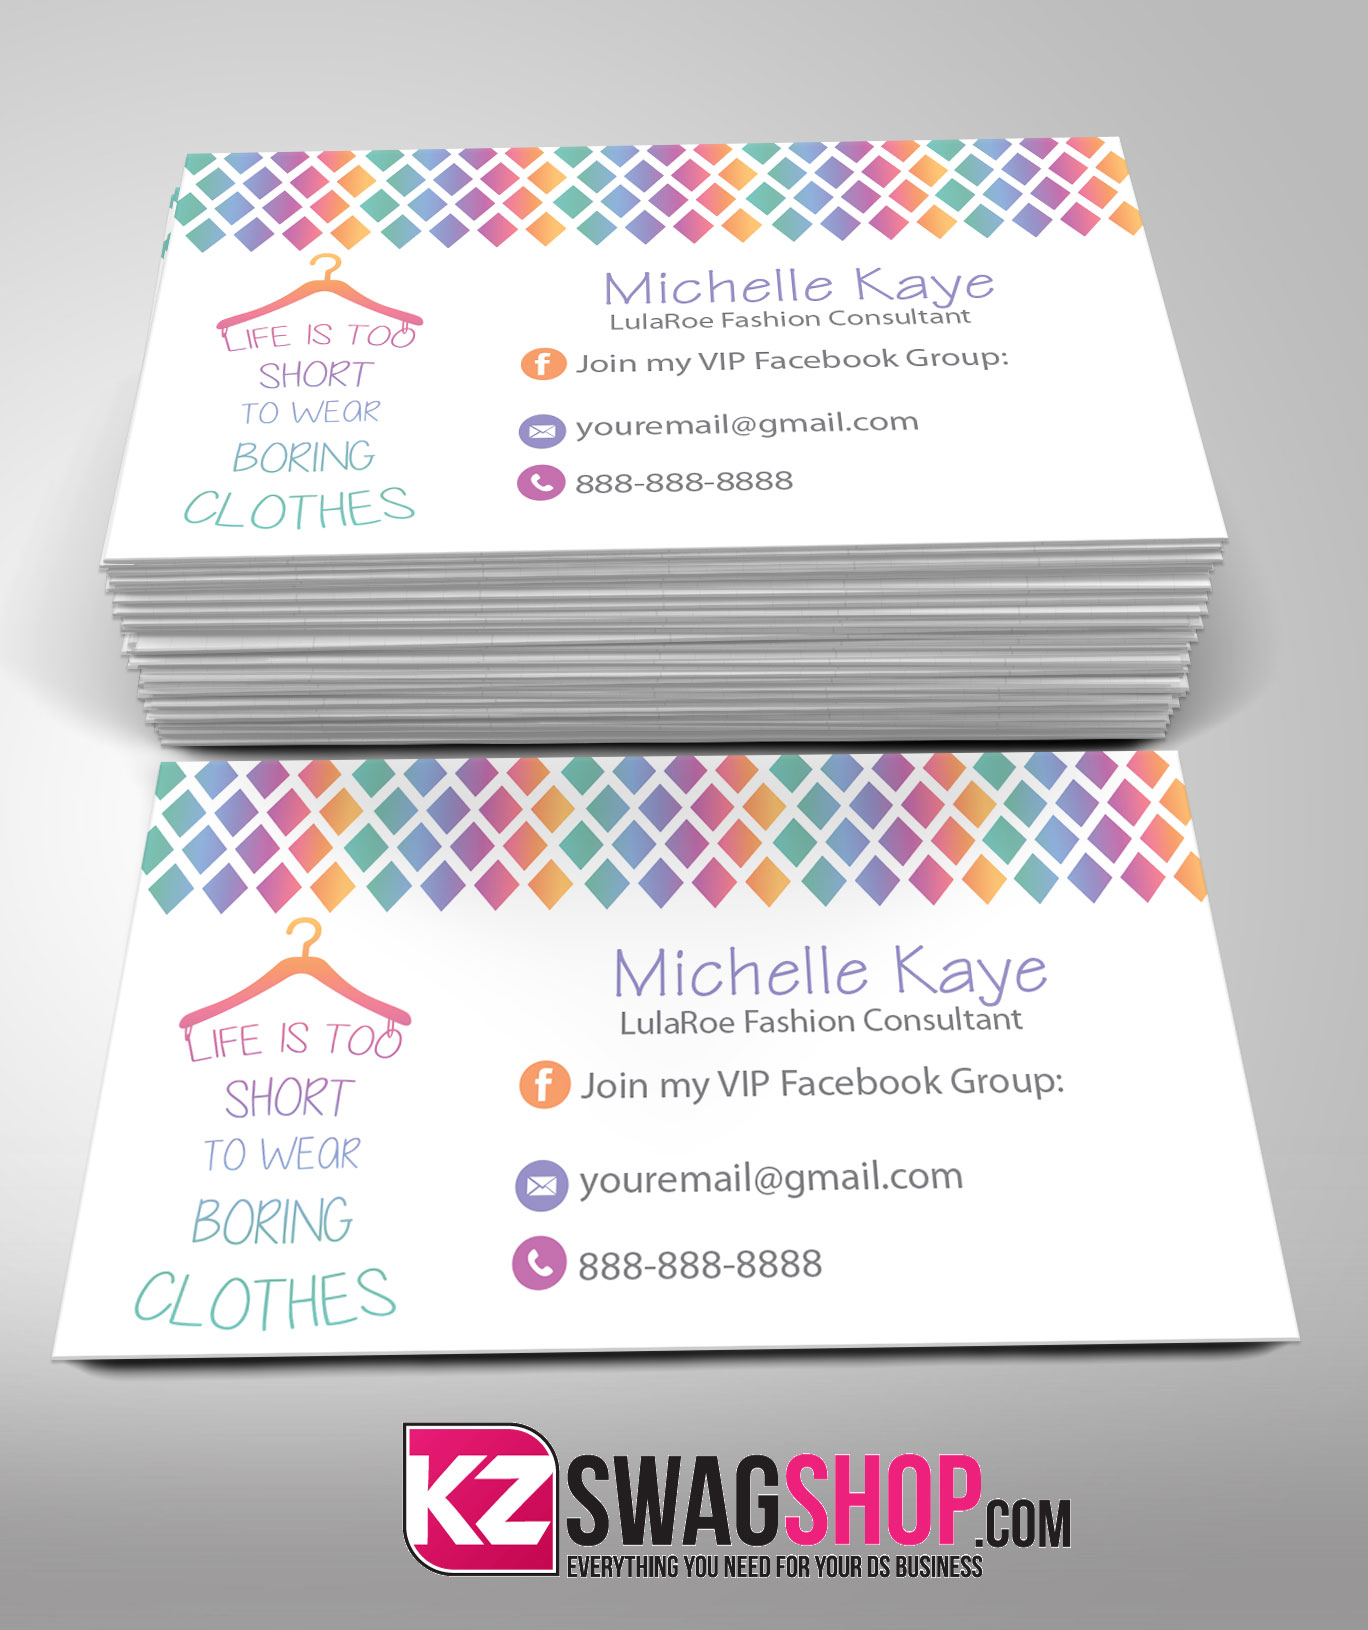 Lularoe business cards 7 kz creative services online store lularoe business cards 7 reheart